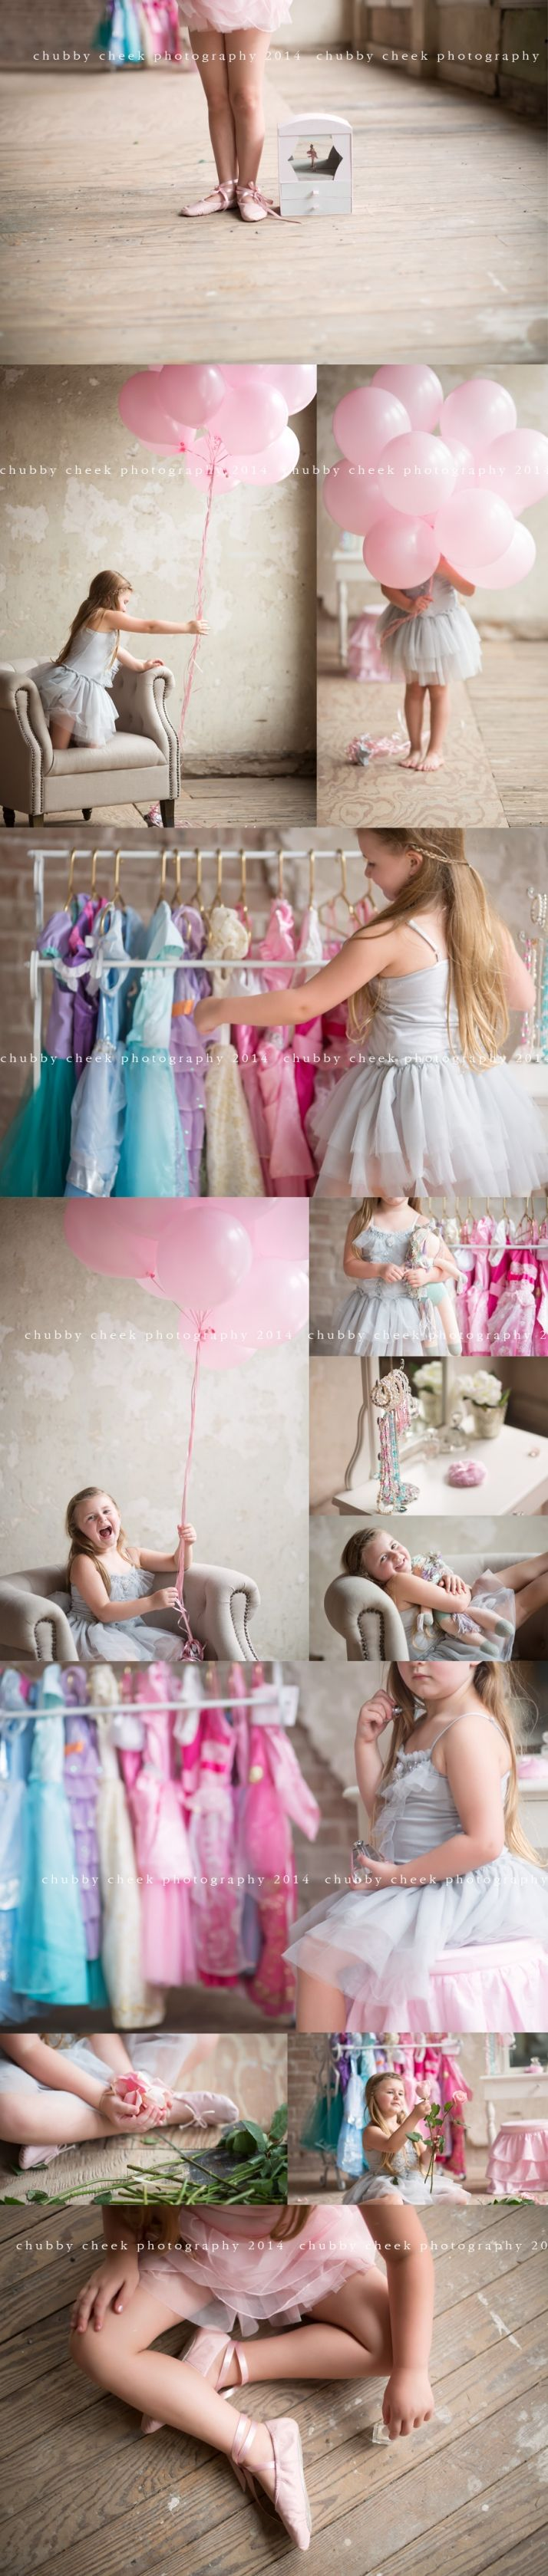 Ballerina, dress up, All About Me 5 year old session  © chubby cheek photography cypress tx child photographer